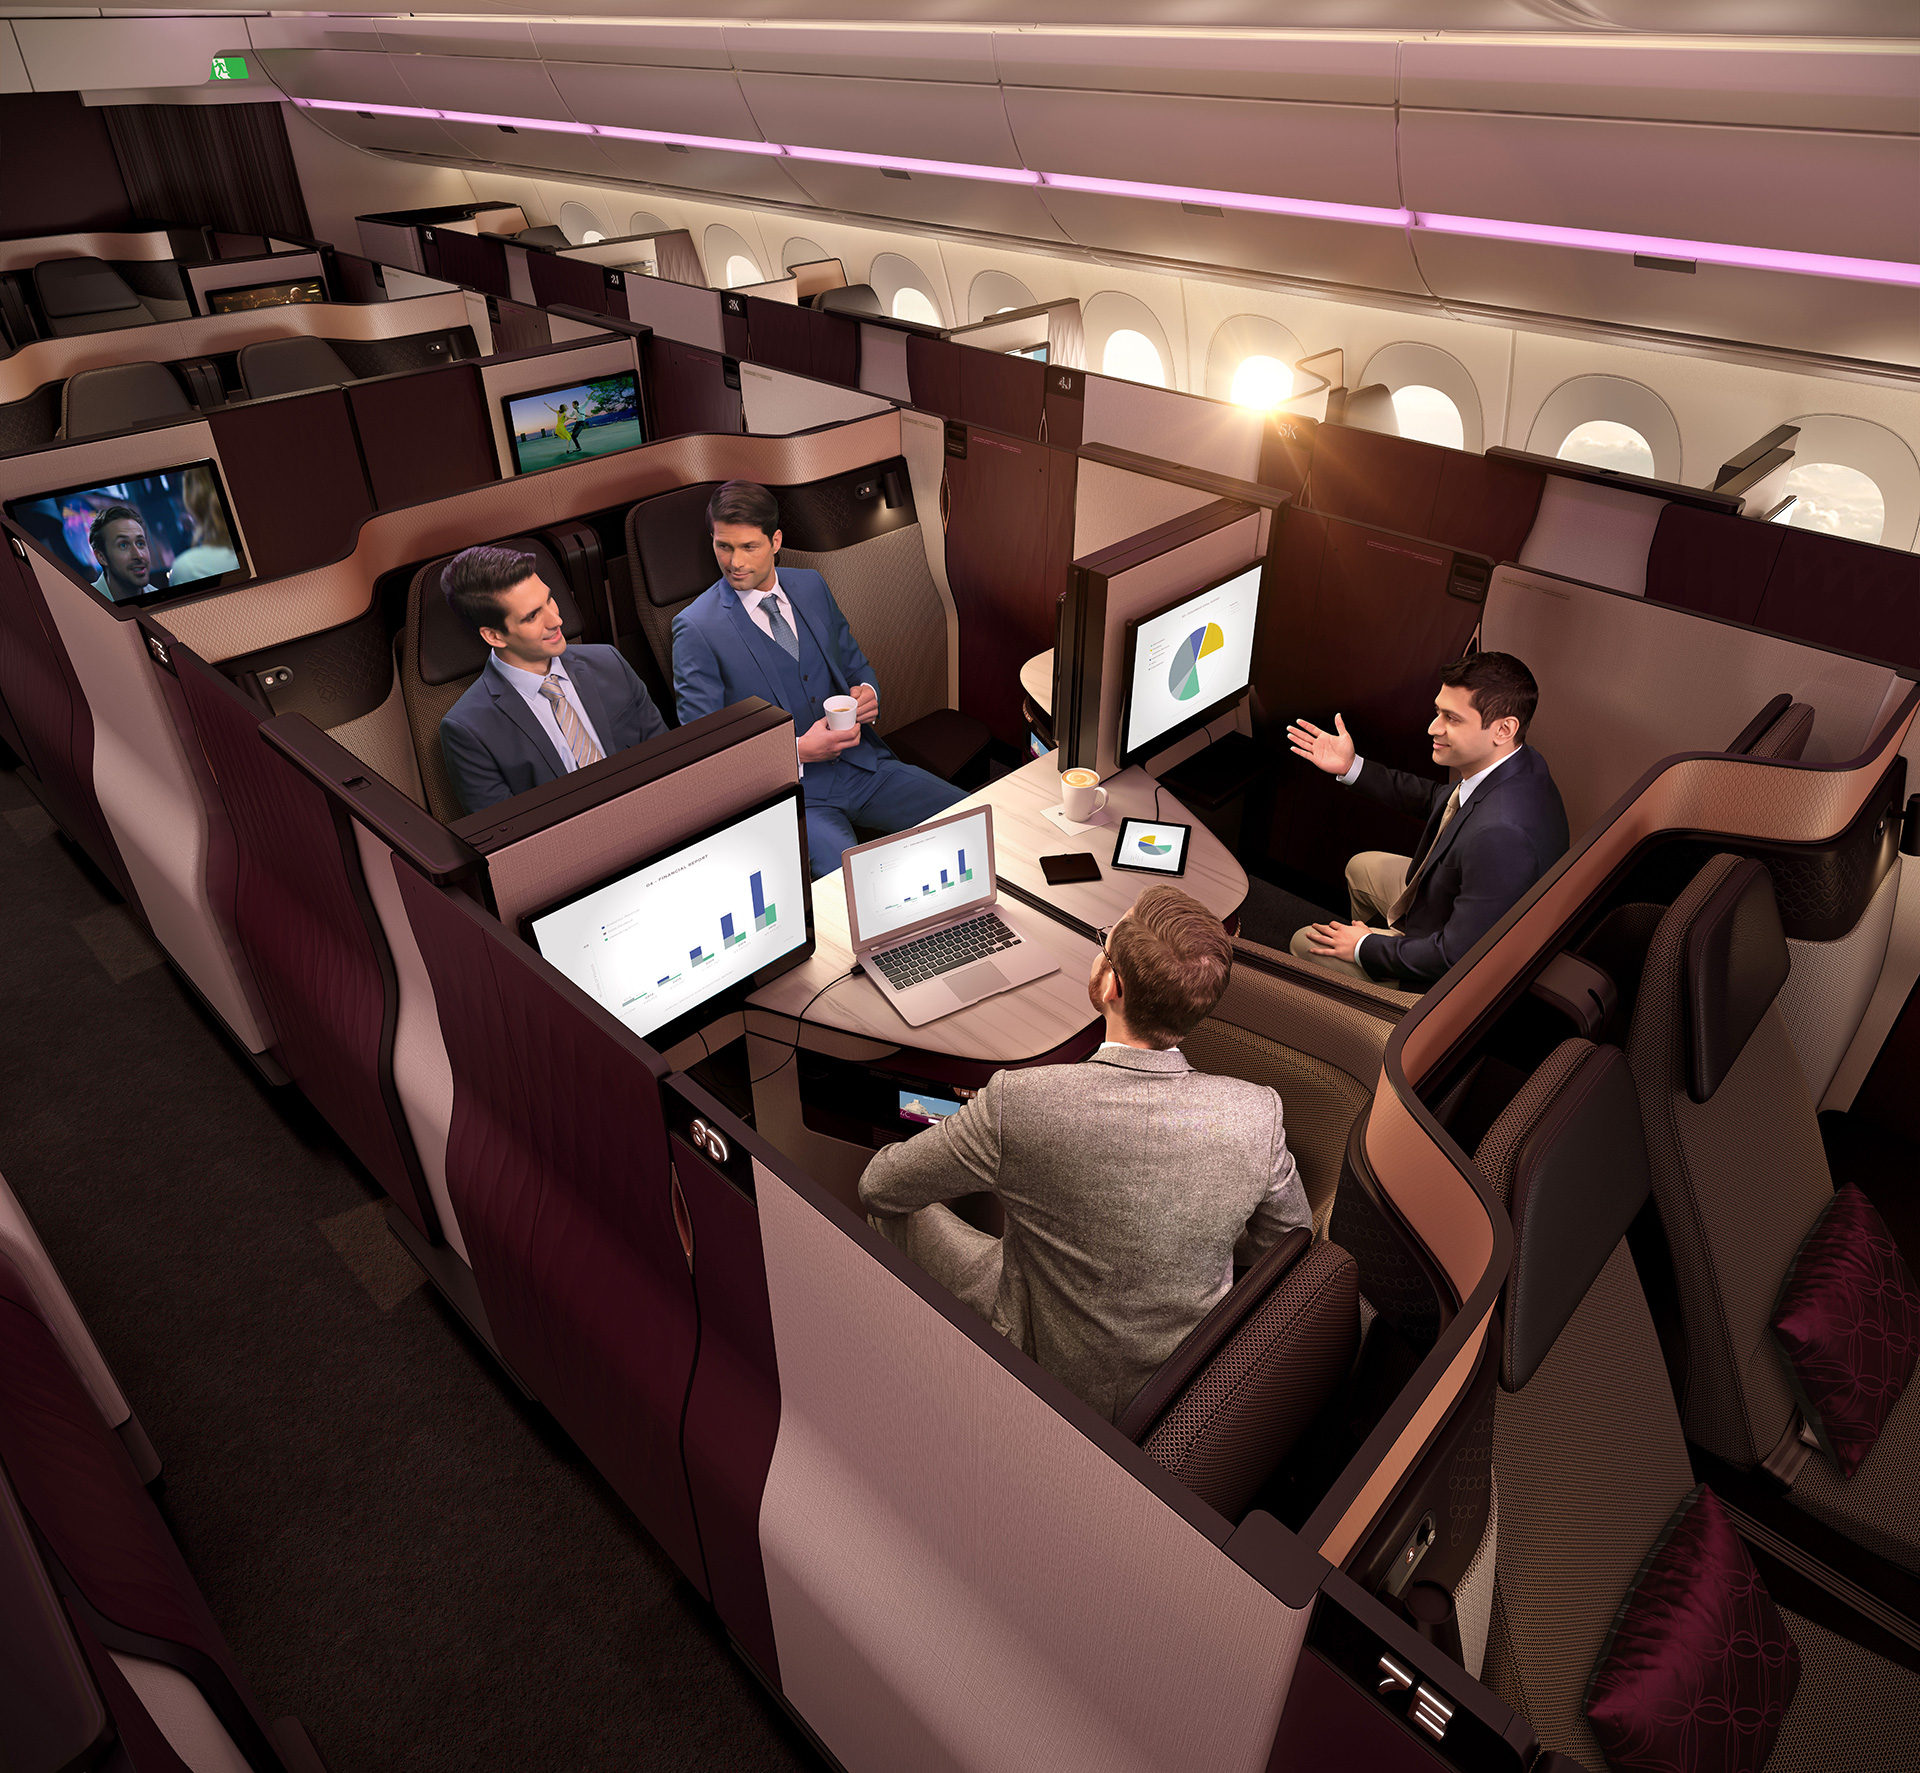 Qatar Airways' QSuite designed by PriestmanGoode and Qatar Airways | Paul Priestman | PriestmanGoode | STIRworld